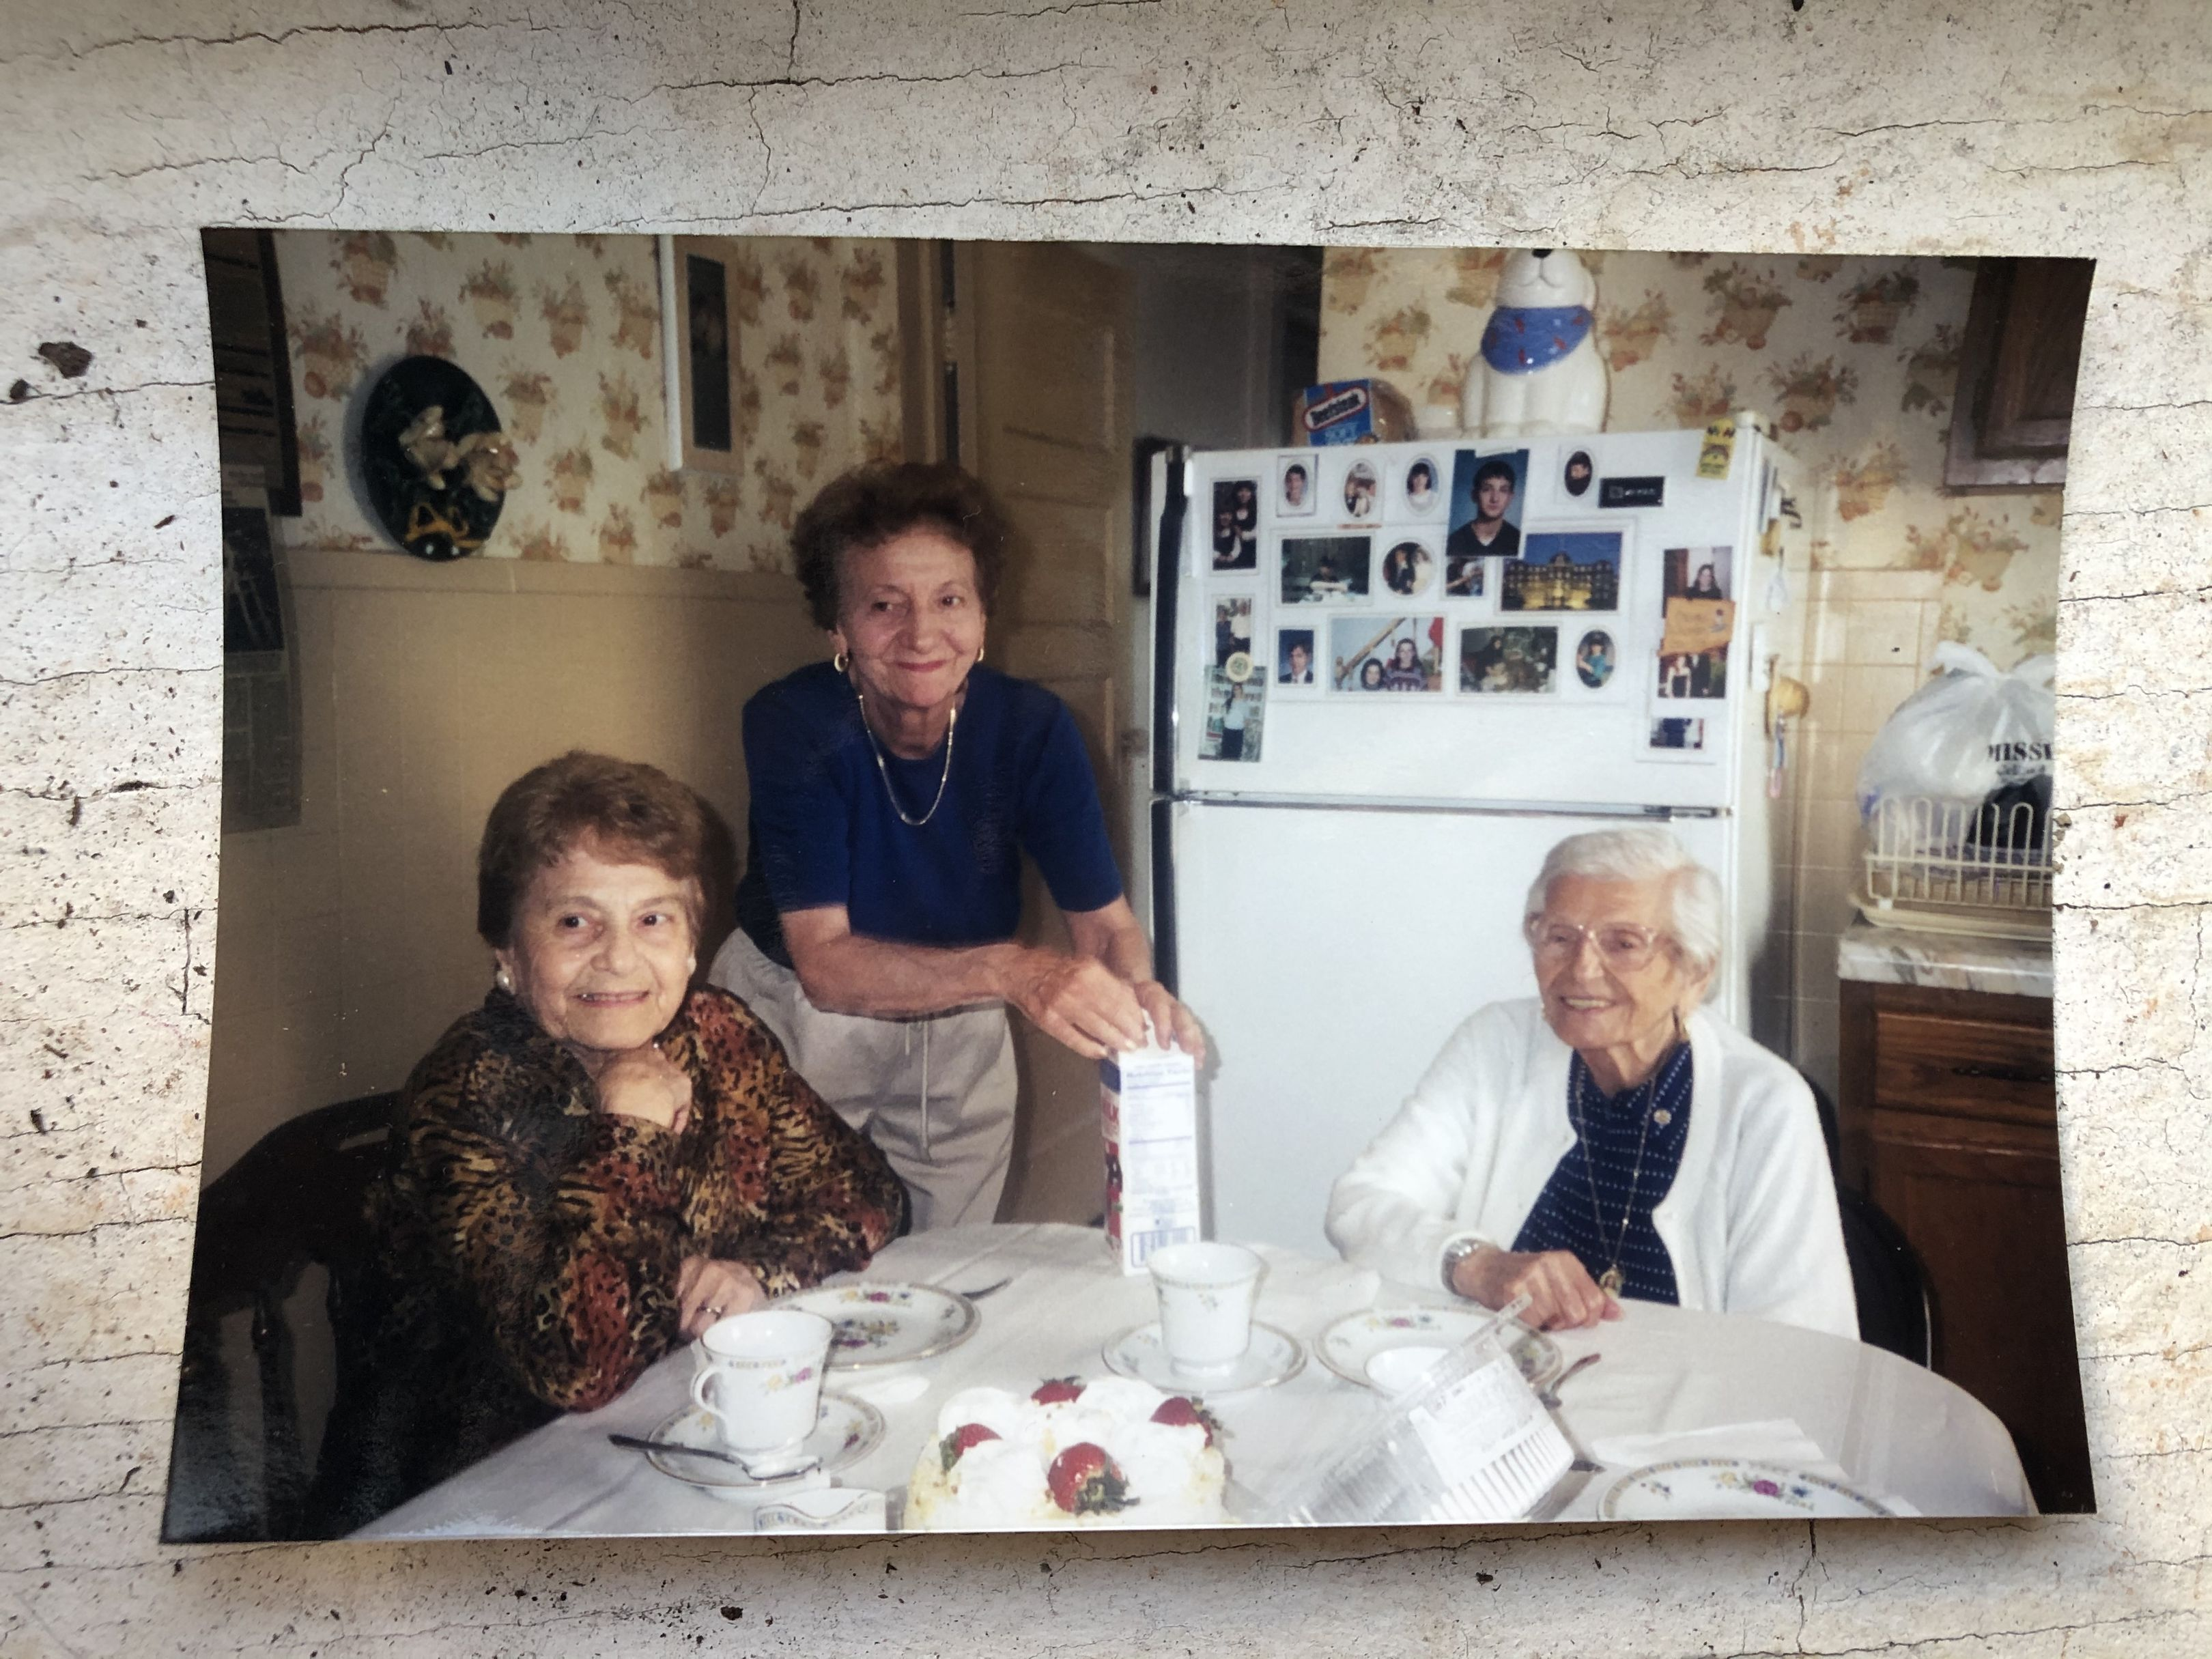 Nana's Spaghetti Soup: Not Your Typical Italian Grandma Story